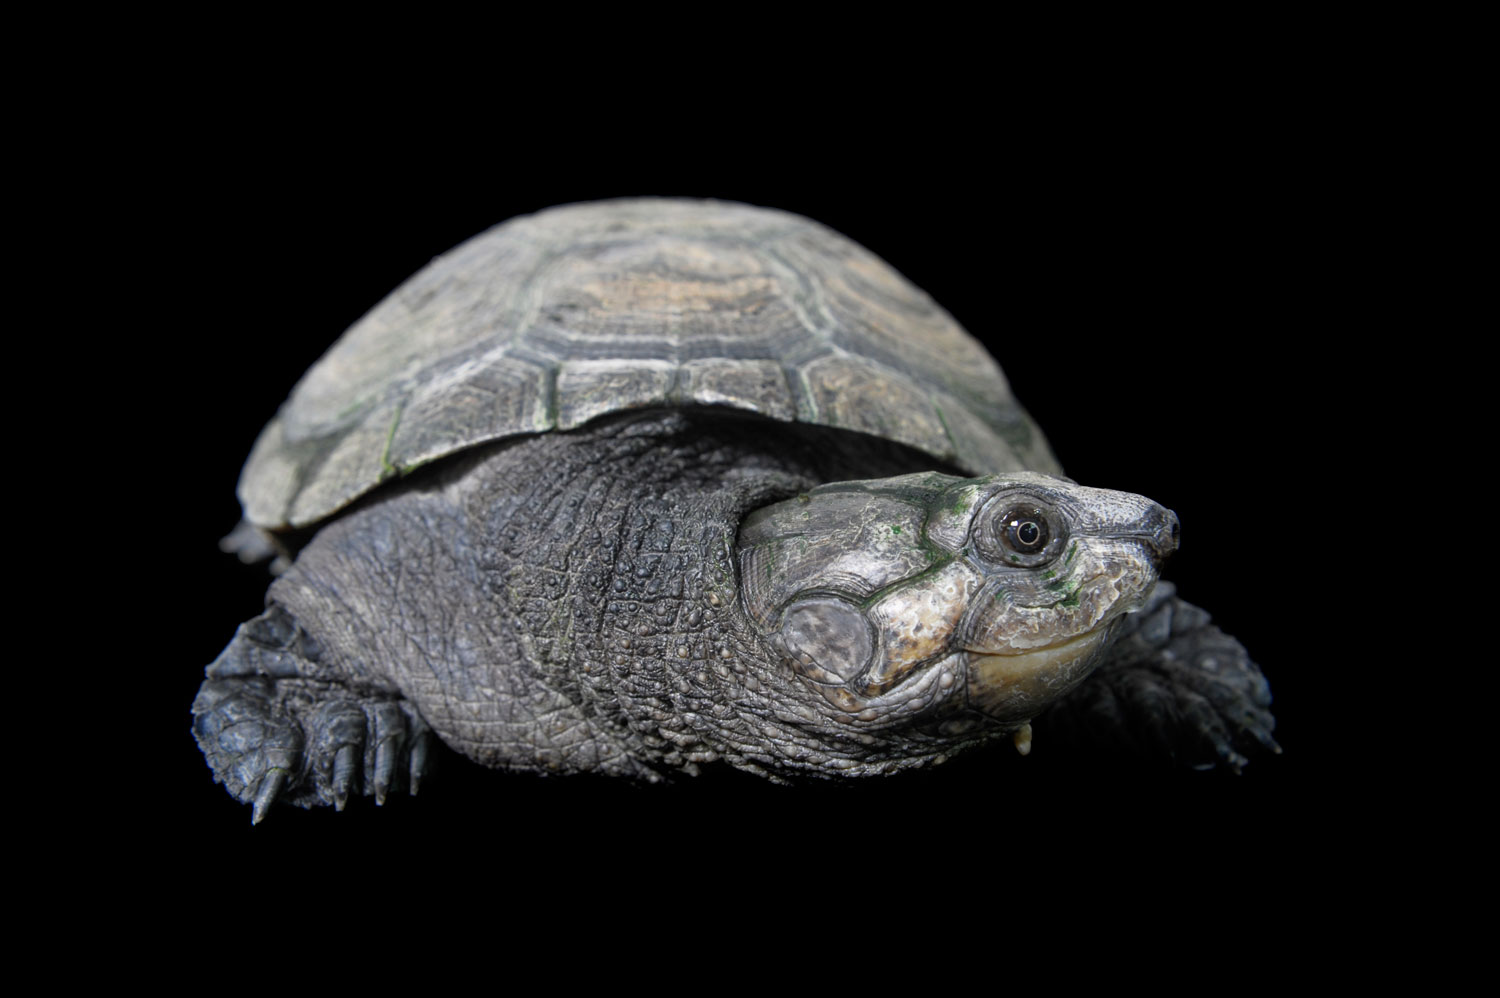 A Madagascar big-headed turtle, Erymnochlys madagascariensis. Madagascar is home to more unique species than any other land mass of its size. But that also puts Madagascar tortoises under greater threat.